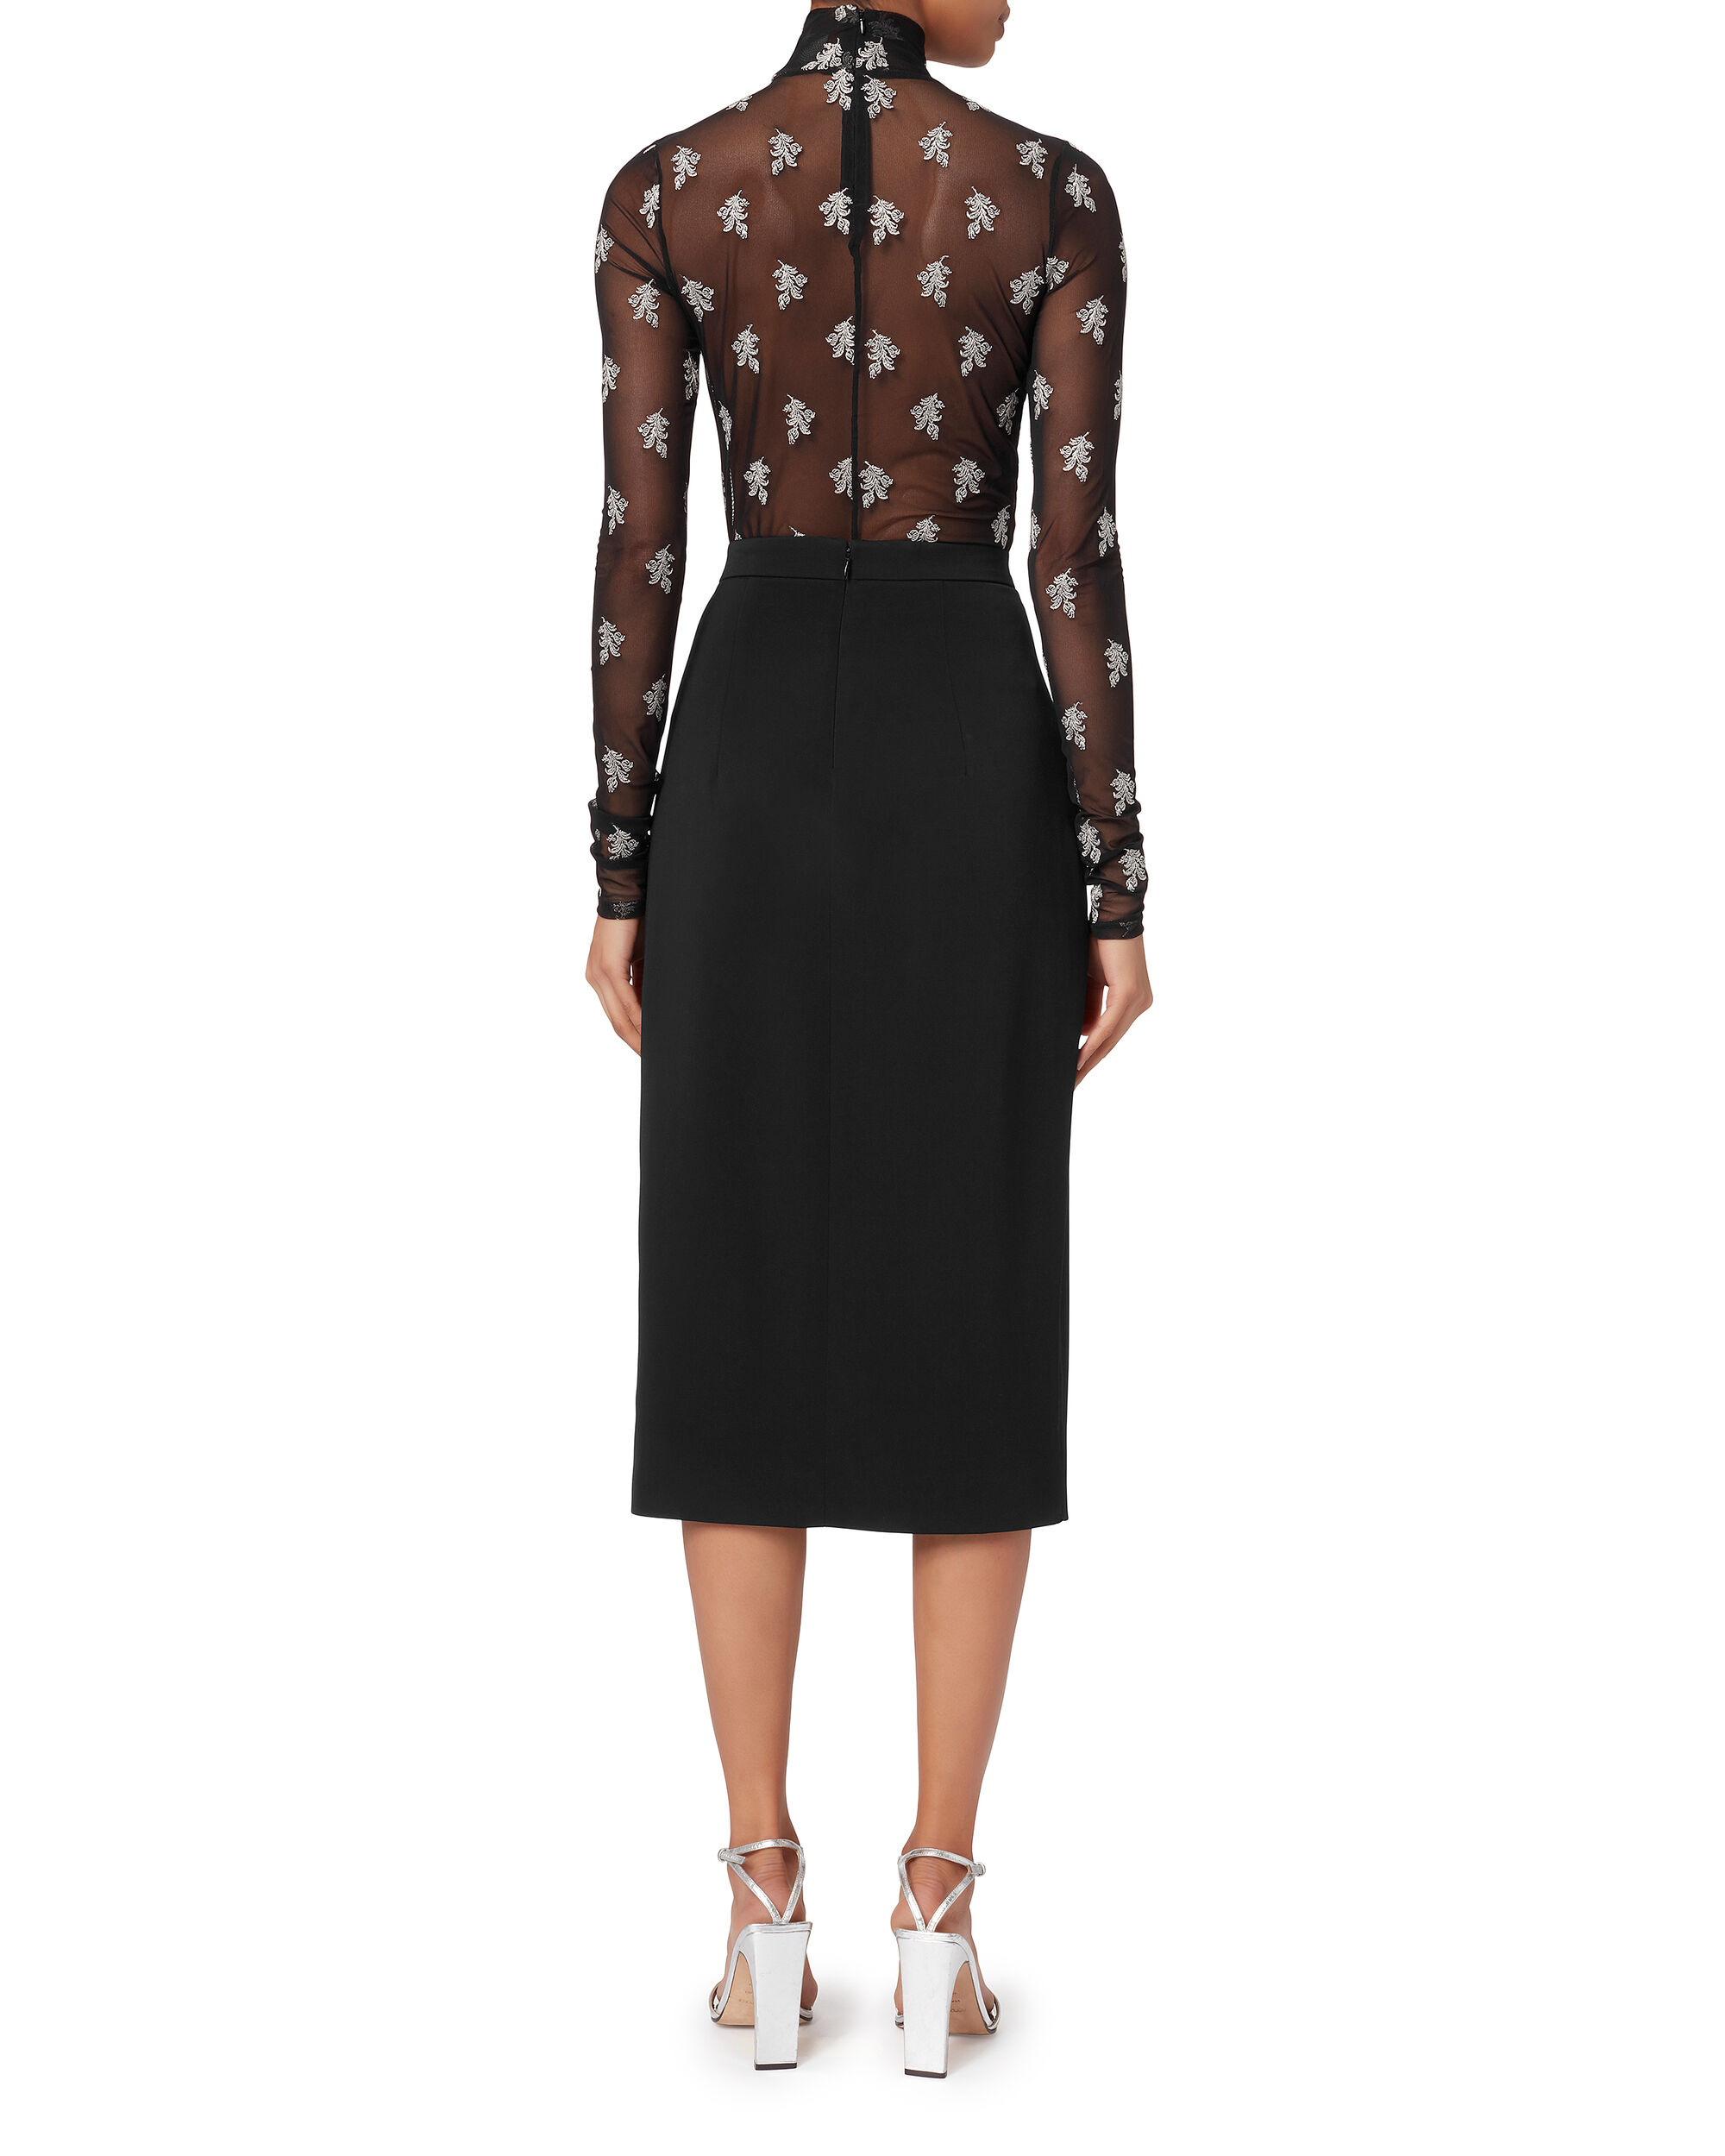 Dahlia High-Waist Pencil Skirt, BLACK, hi-res